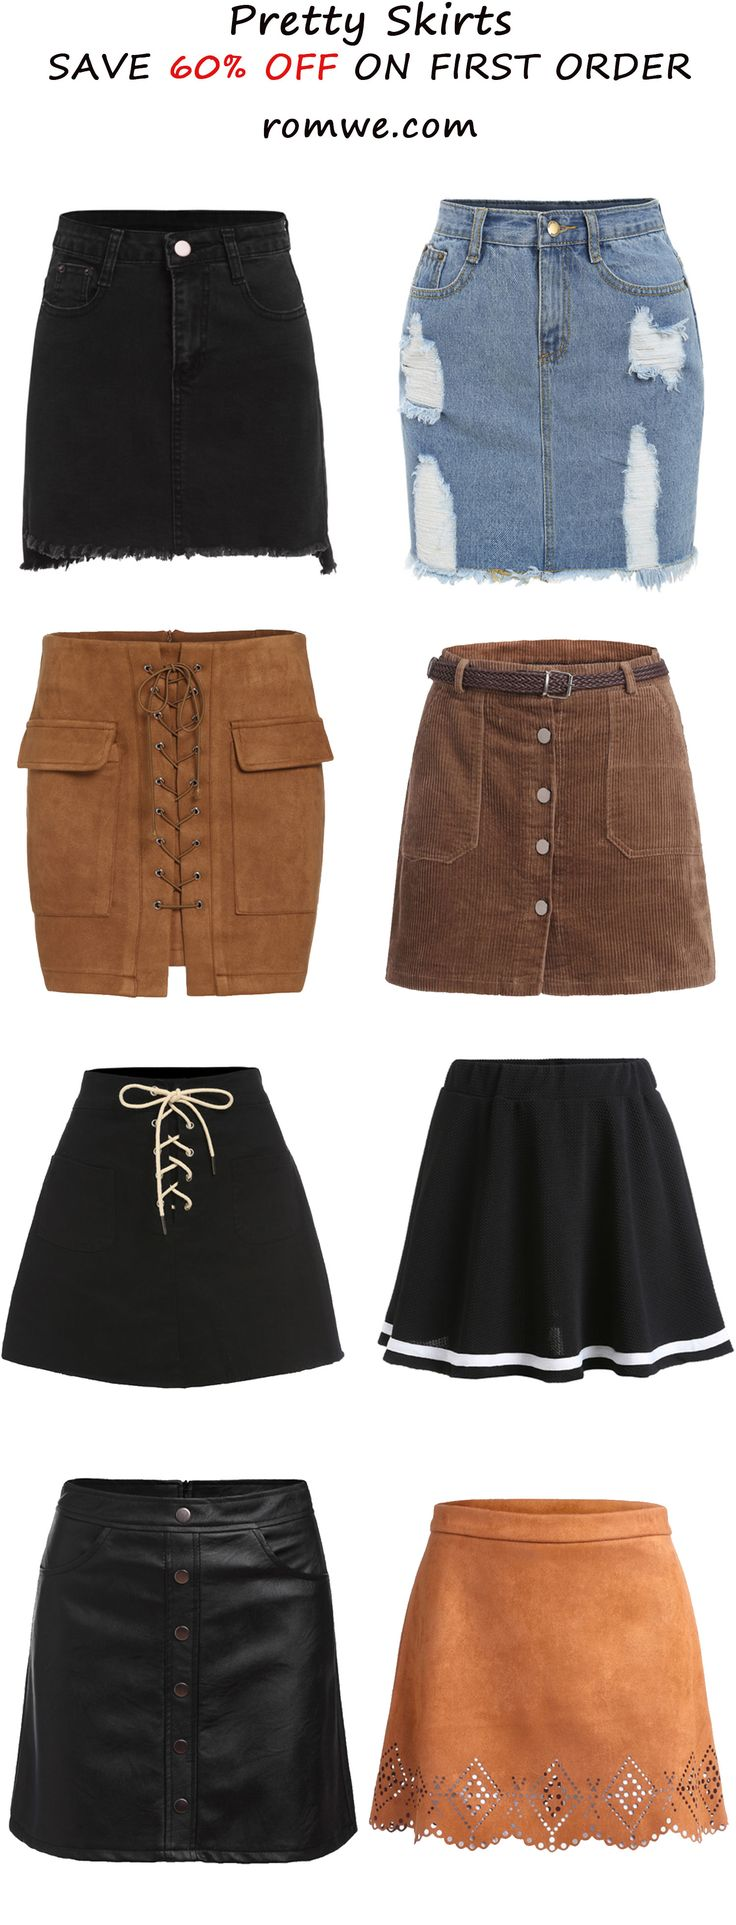 Chic Skirts Collection 2016 - romwe.com